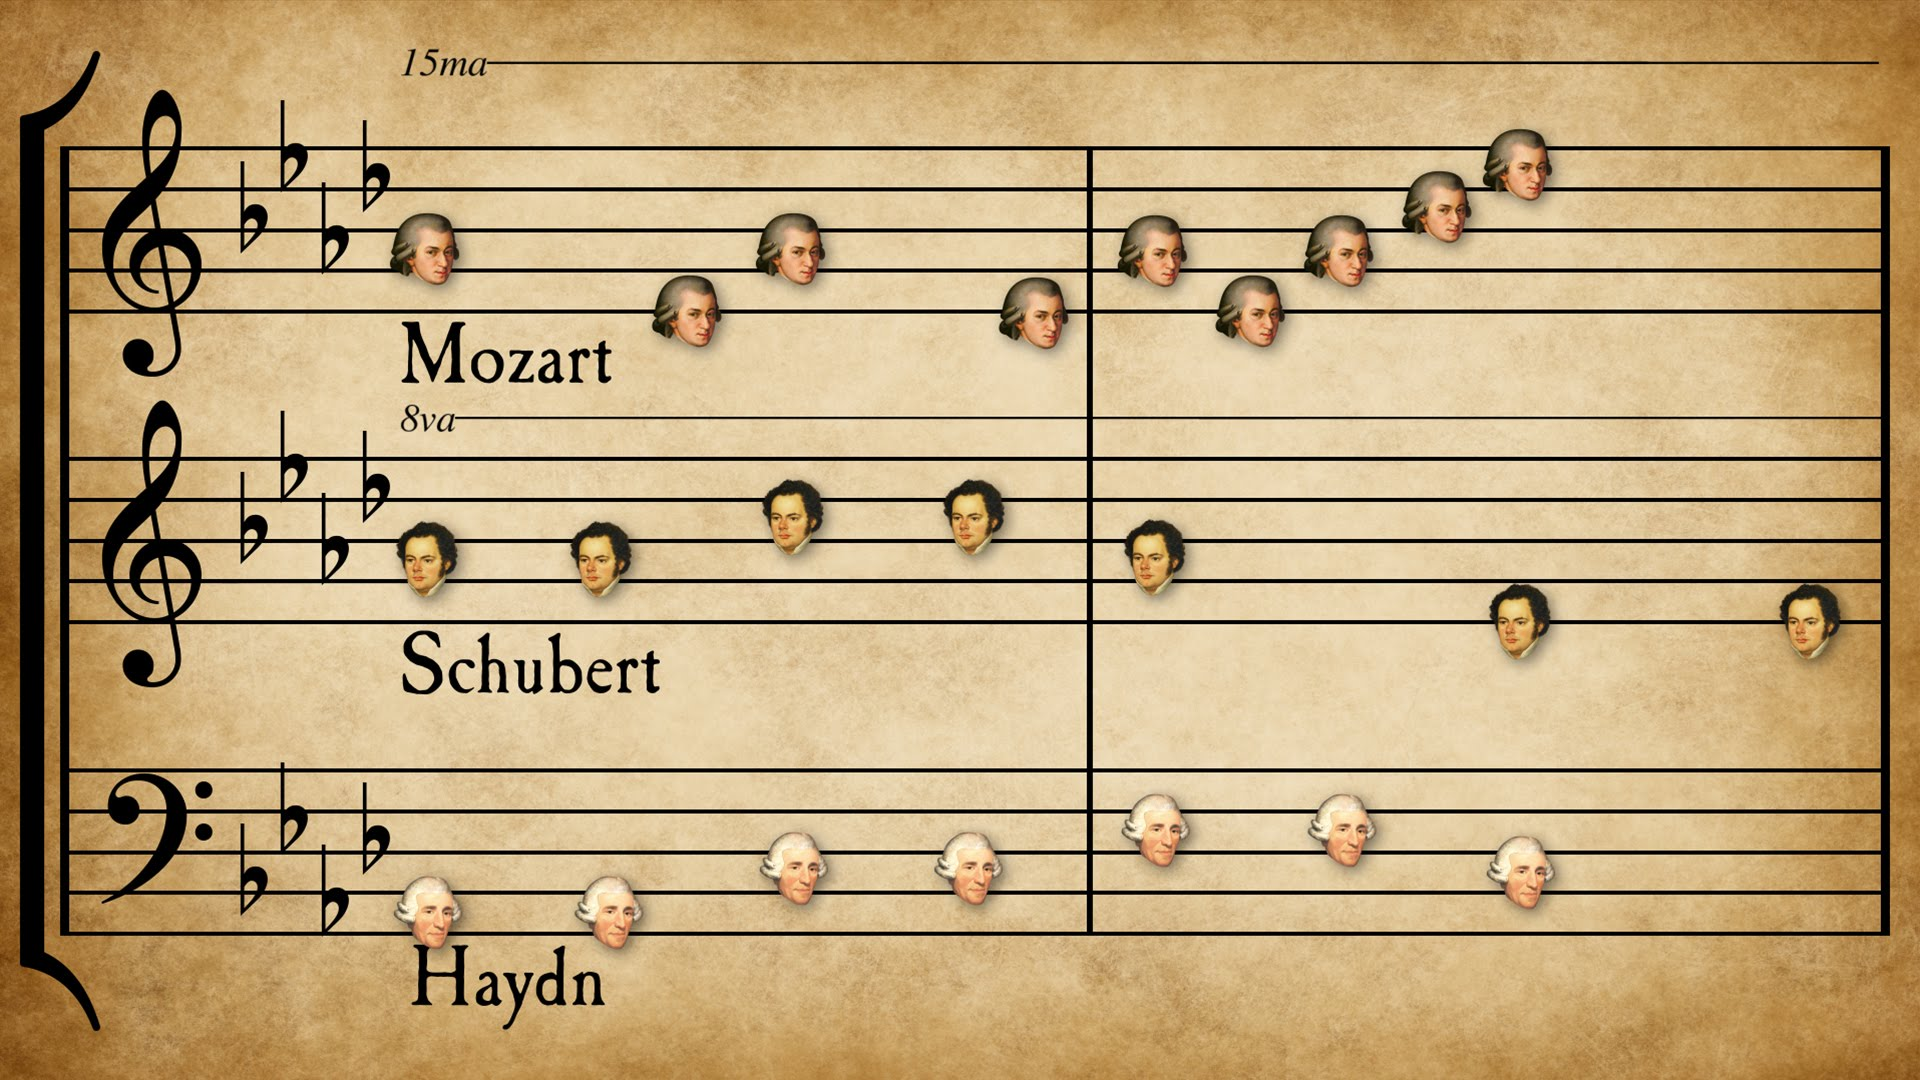 For All The Classical Music Fans Out There